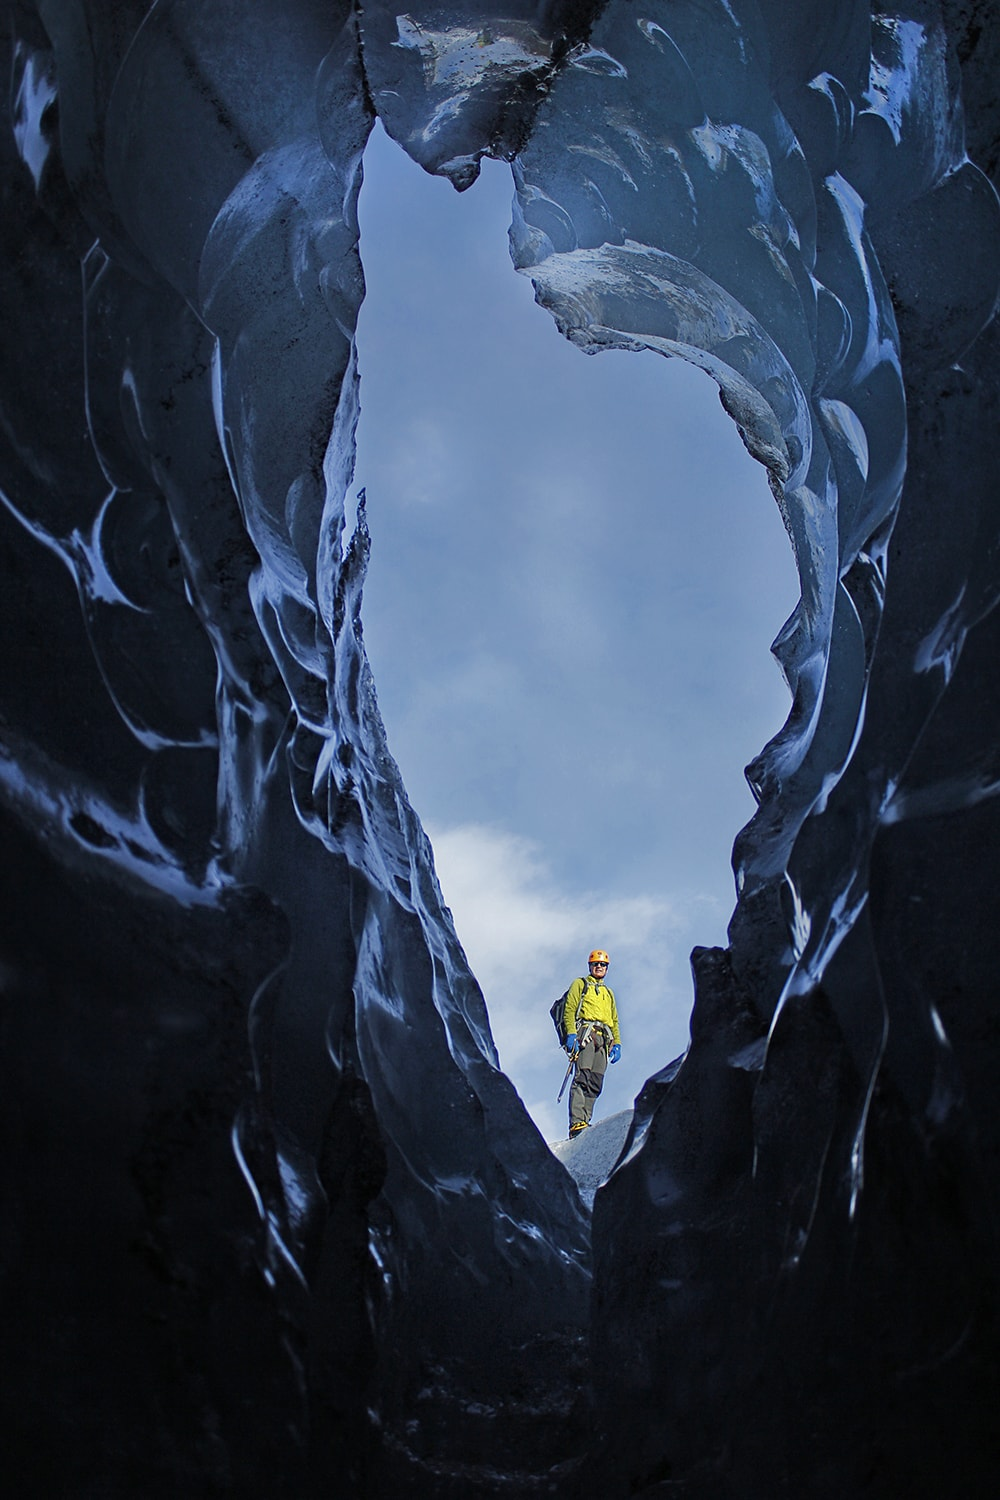 One of the openings of the ice cave